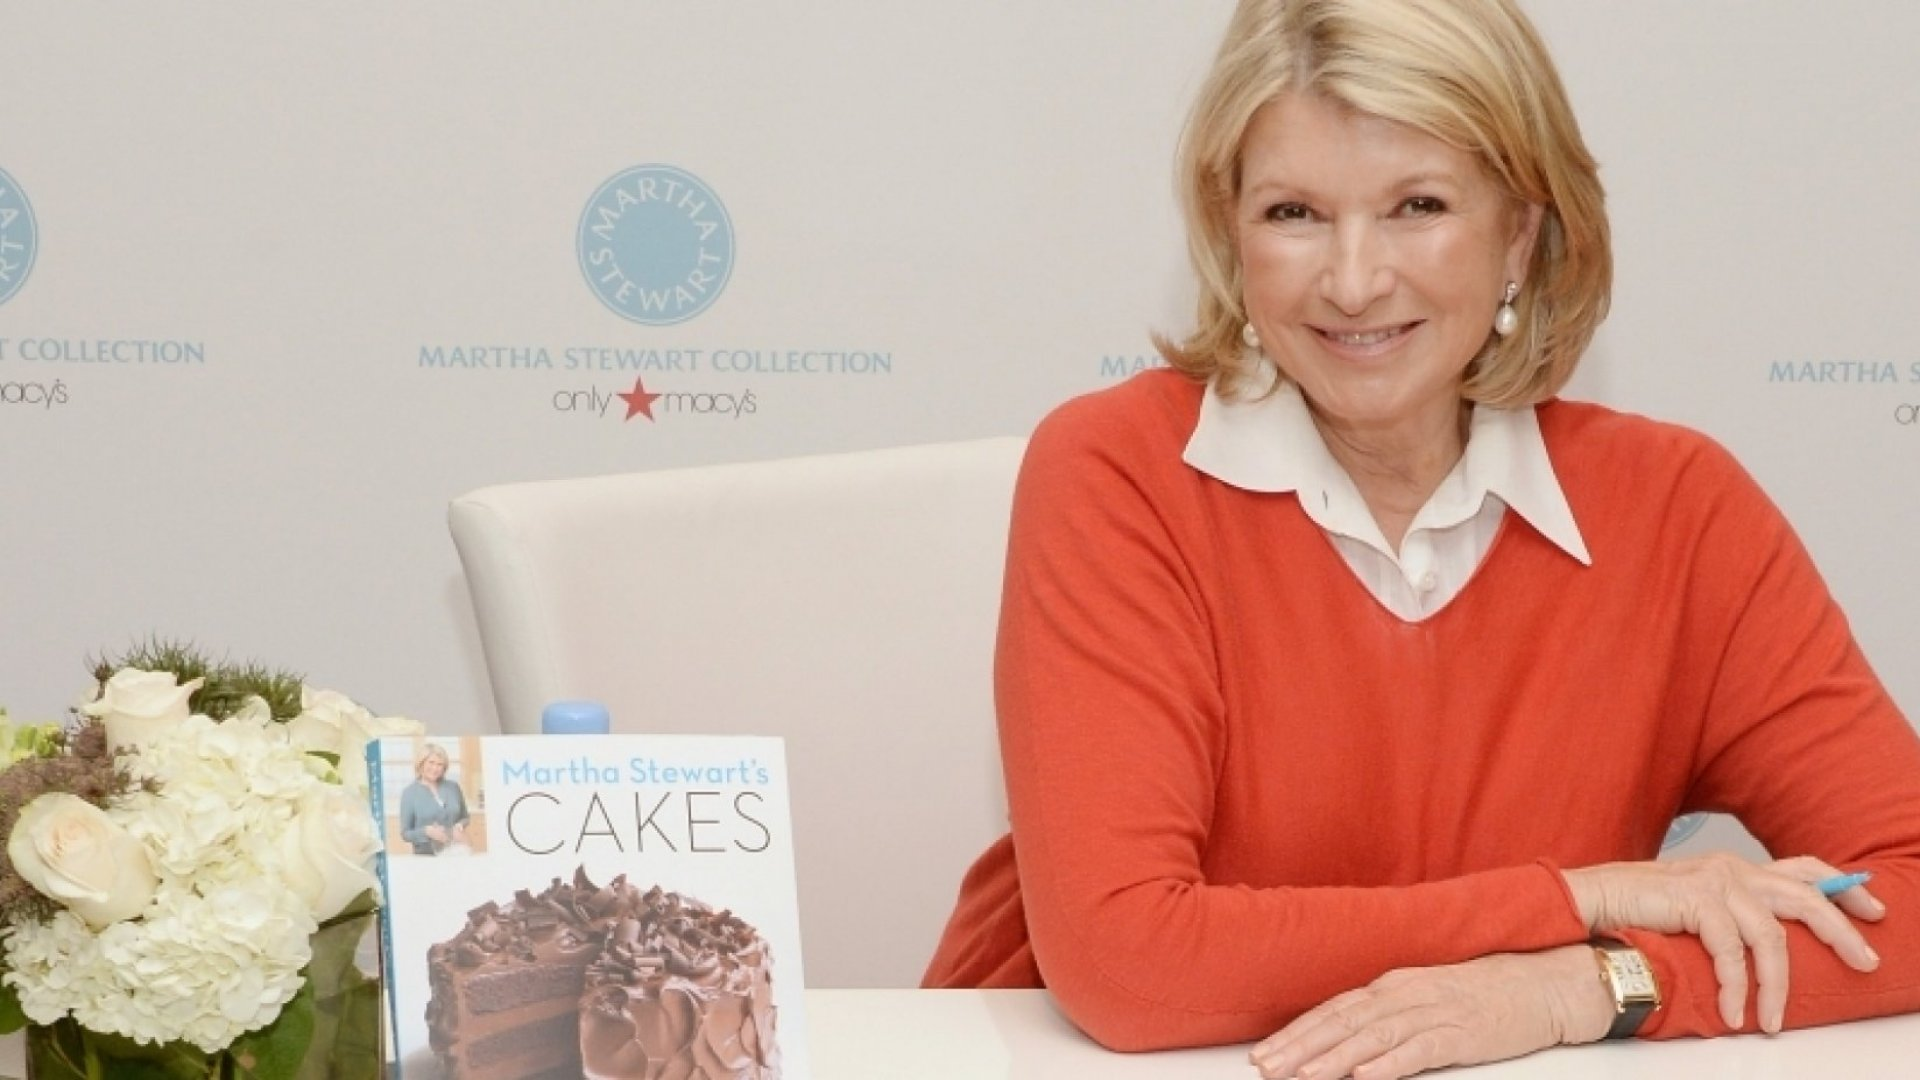 20 Bizarre Facts You Never Knew About Martha Stewart